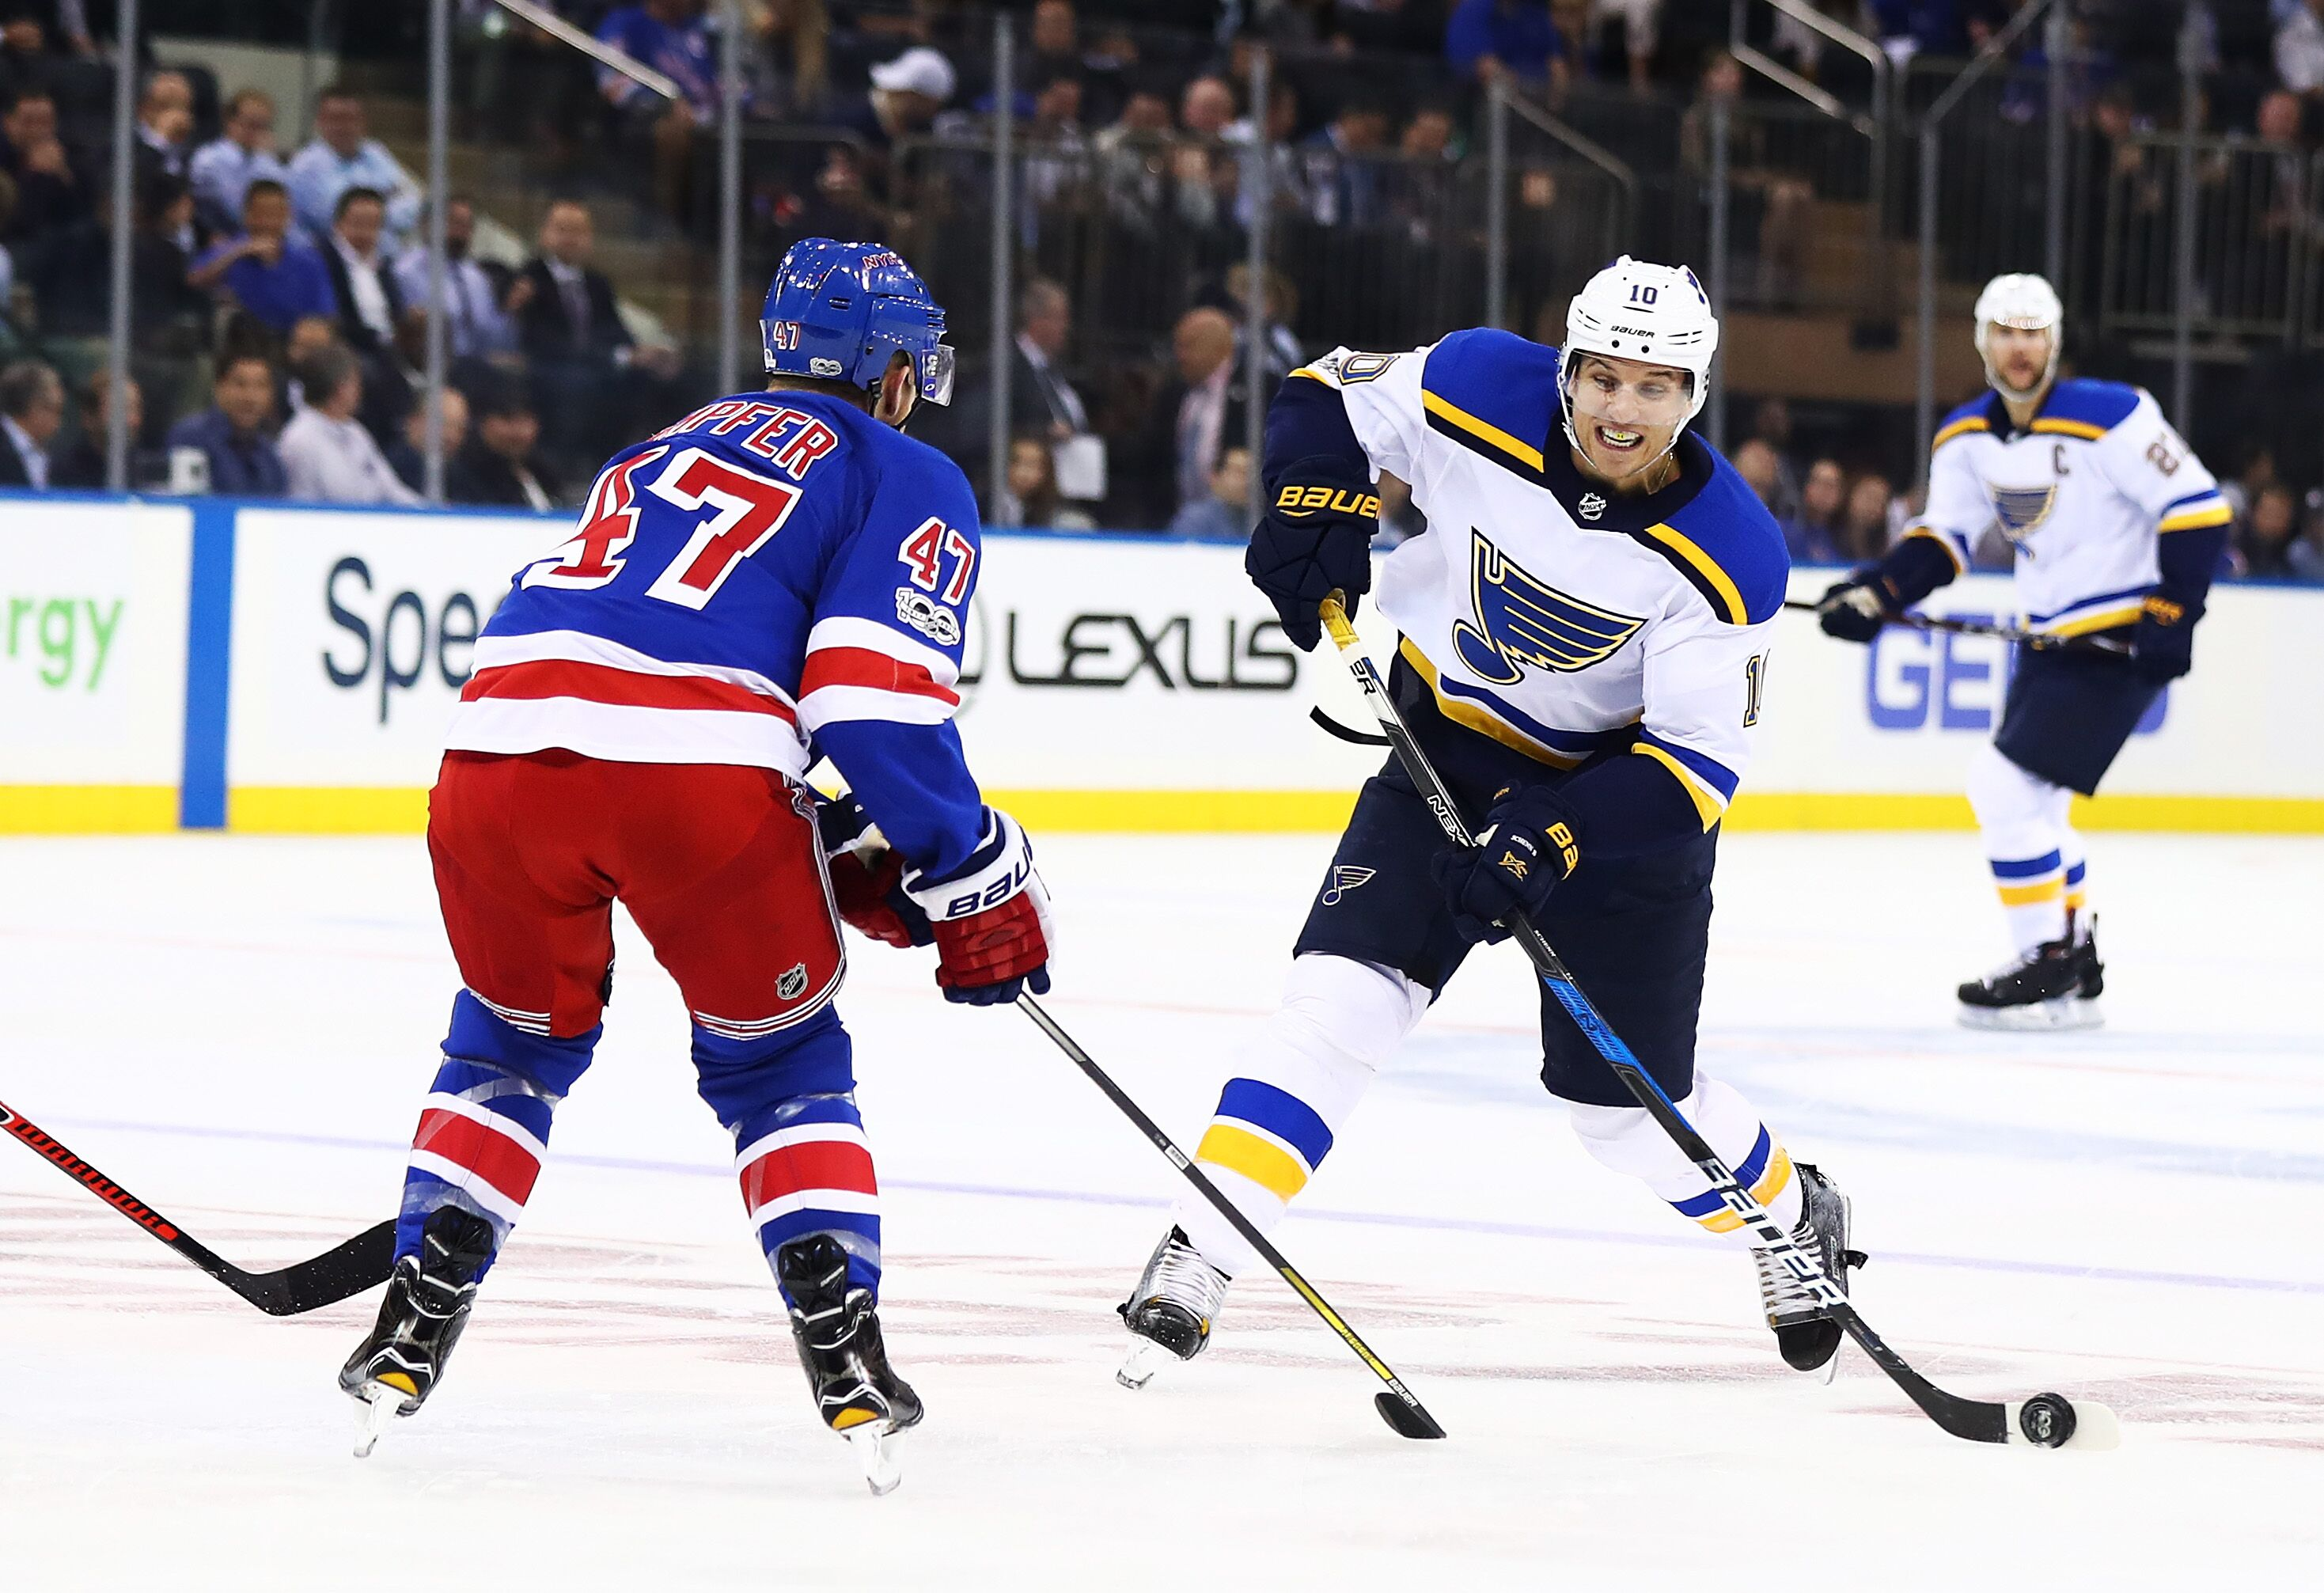 859926530-st-louis-blues-v-new-york-rangers.jpg